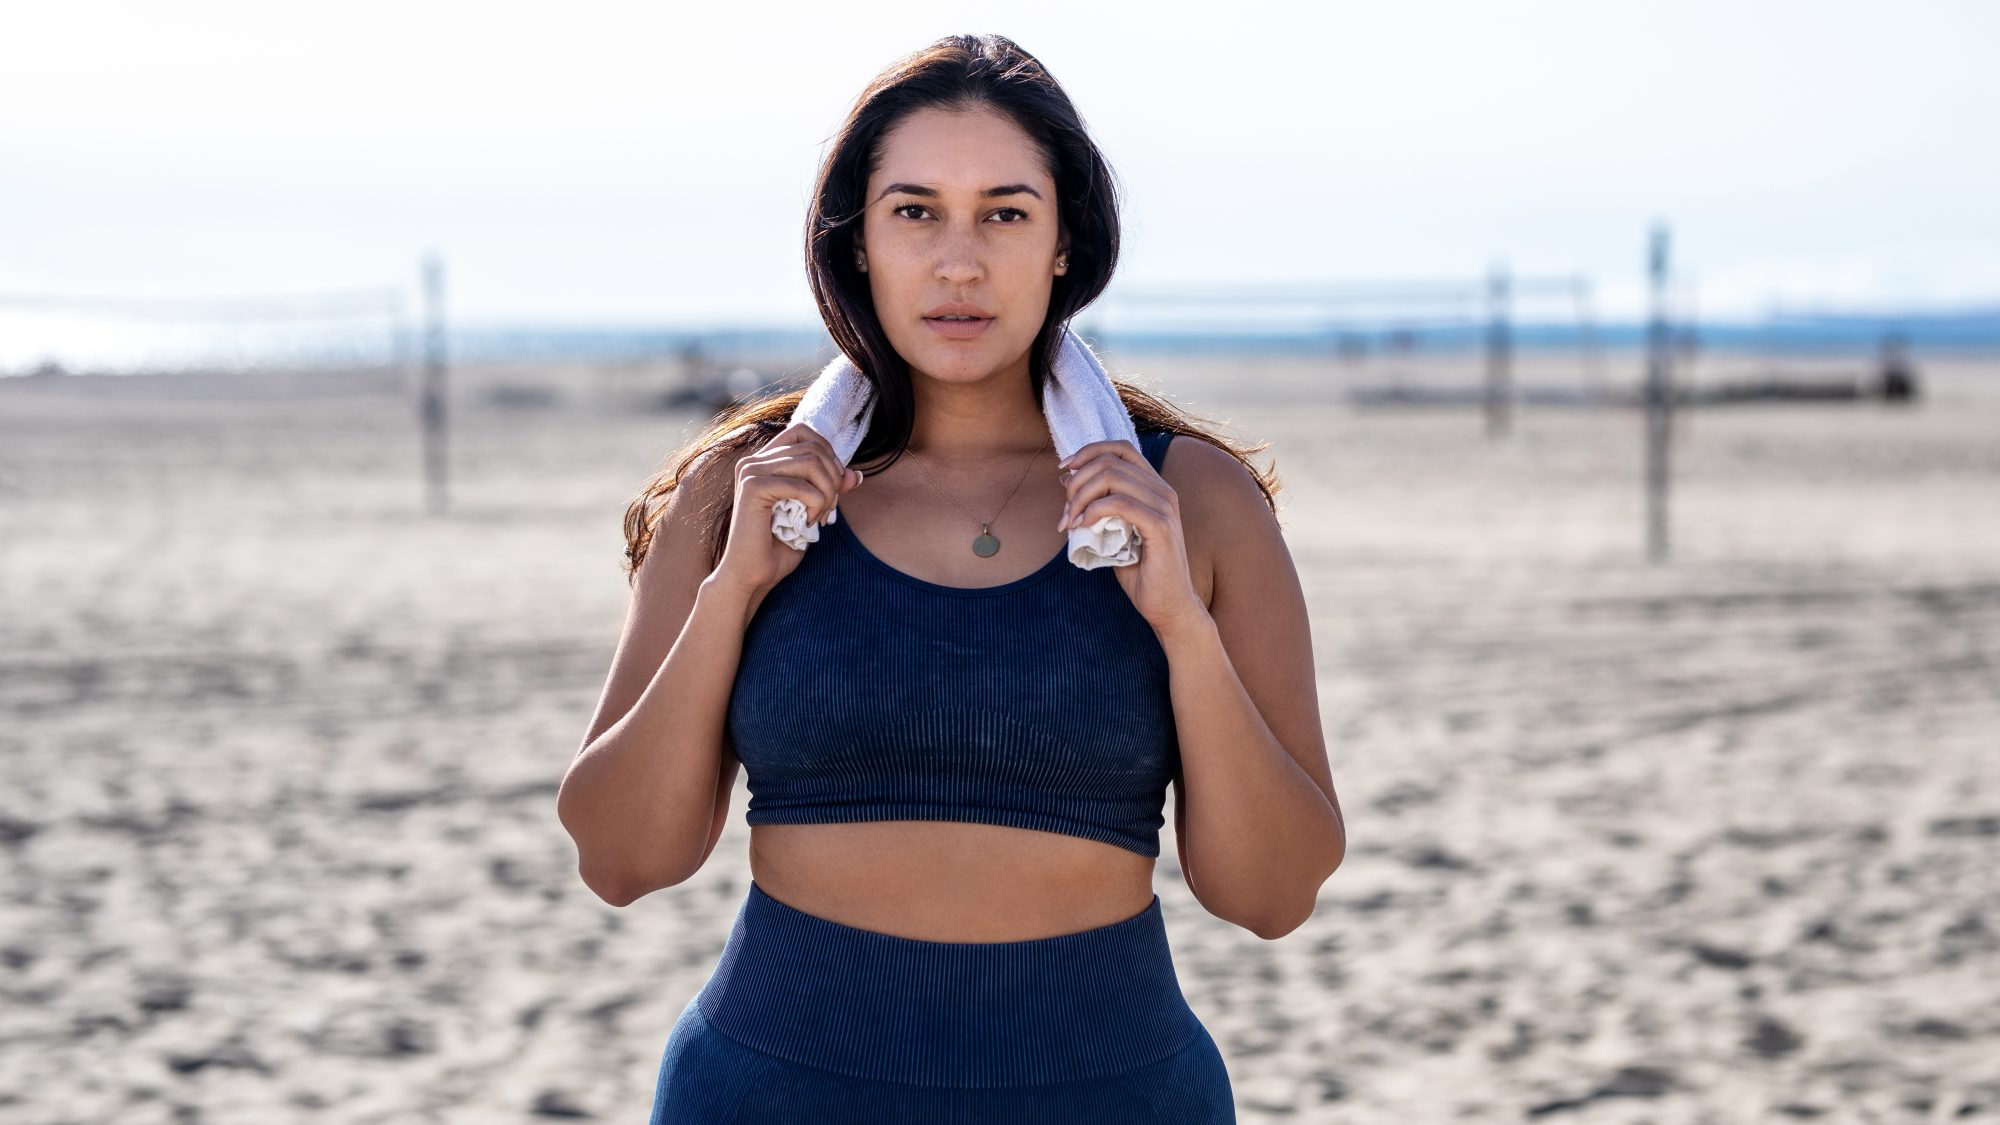 What Happens When You Wear a Sports Bra All Day Every Day: woman wearing a sports bra at the beach